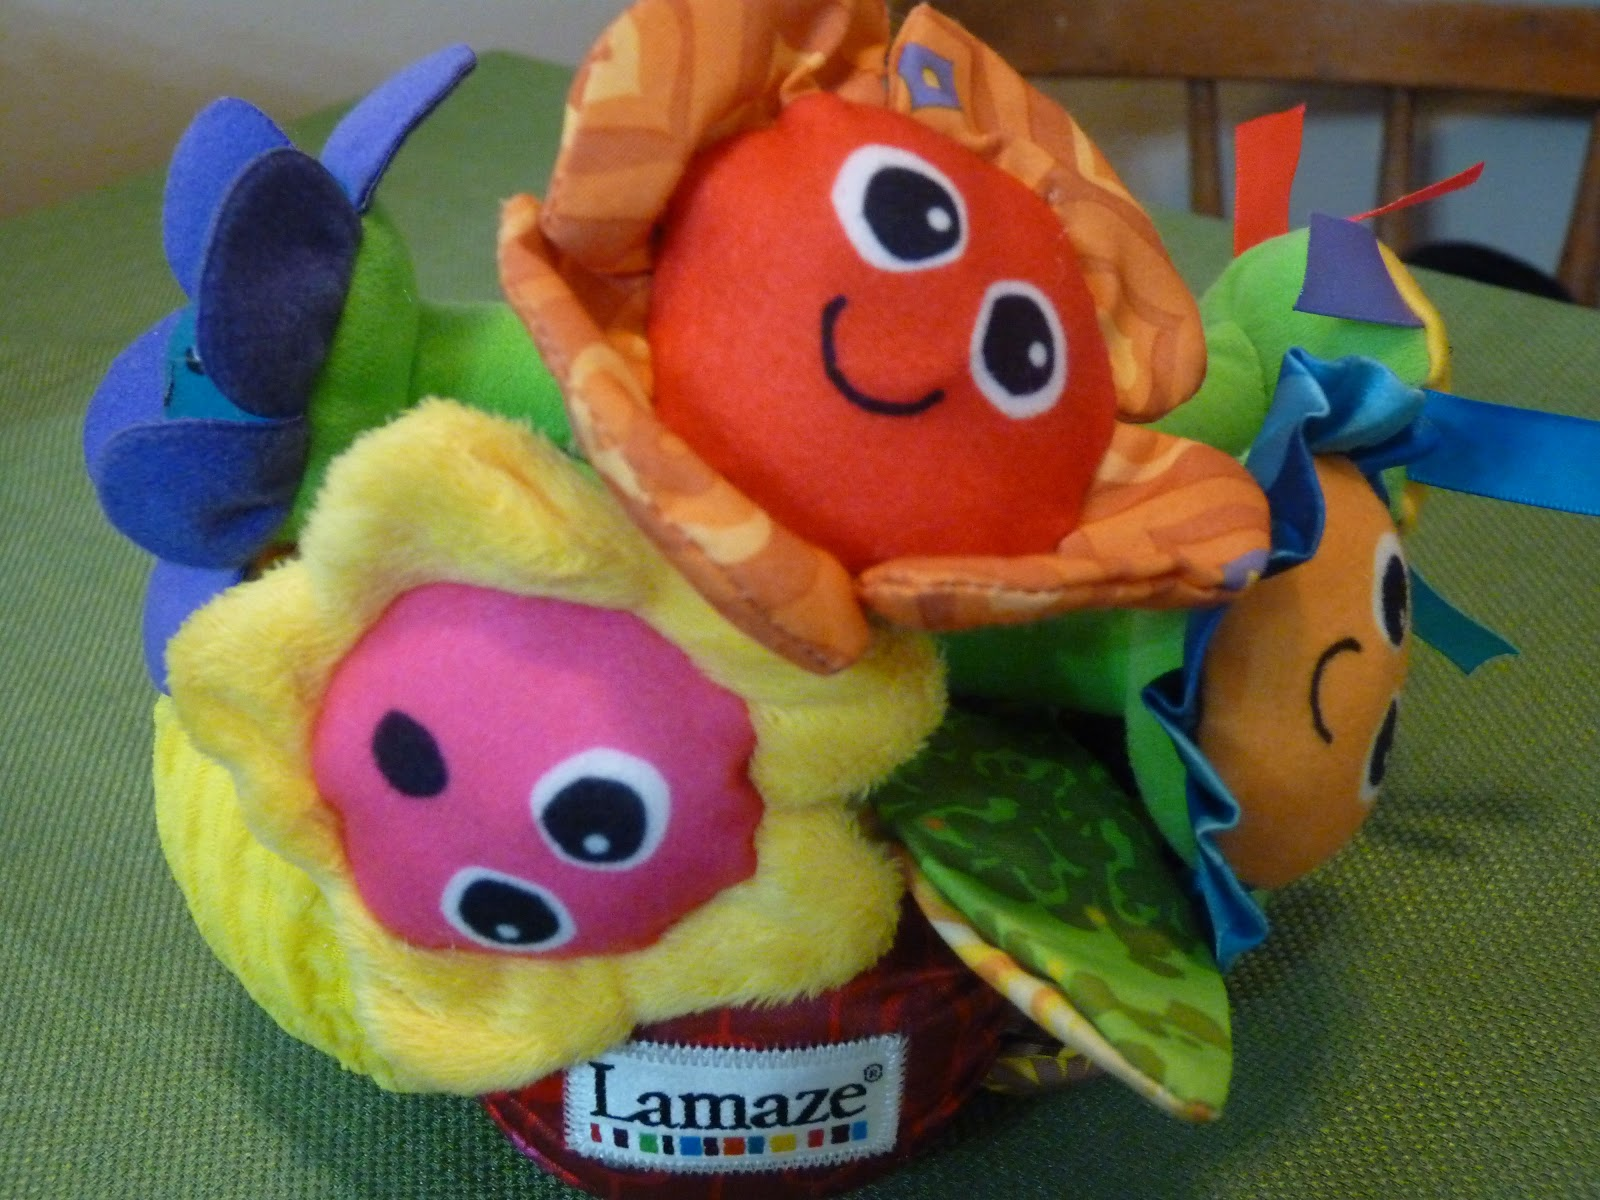 Growing Little Ones Lamaze Soft Chime Garden Toy Review